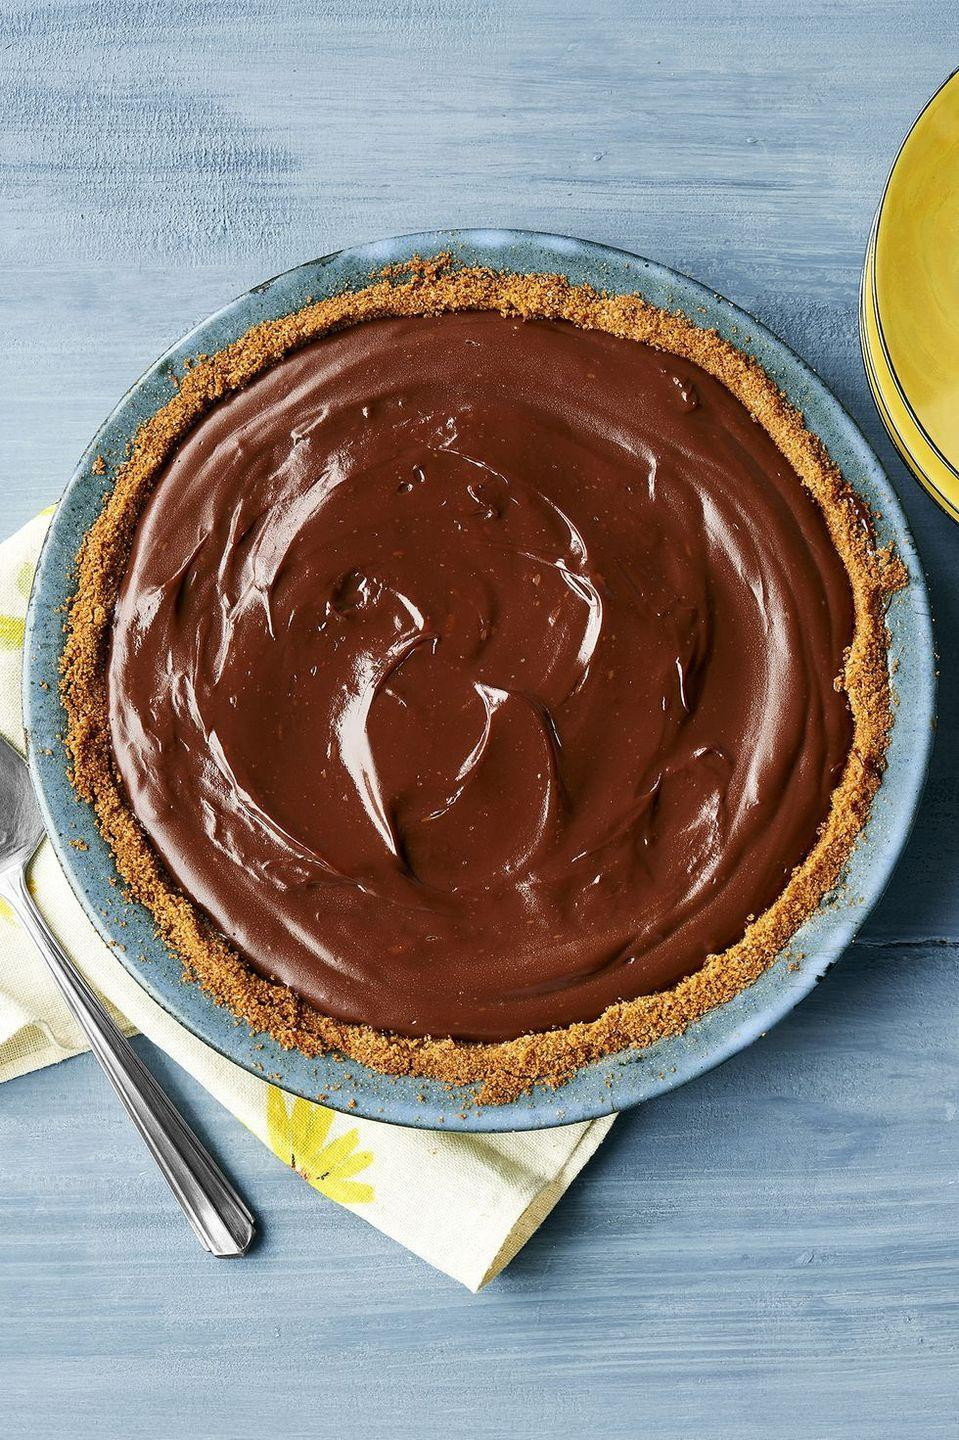 """<p>Chocolate lovers will go crazy for this decadent chocolate pudding pie. You can even customize it by using traditional pie crust, graham cracker crust, or Oreo crumbs. </p><p><a href=""""https://www.thepioneerwoman.com/food-cooking/recipes/a11850/chocolate-pie/"""" rel=""""nofollow noopener"""" target=""""_blank"""" data-ylk=""""slk:Get Ree's recipe."""" class=""""link rapid-noclick-resp""""><strong>Get Ree's recipe. </strong></a></p><p><a class=""""link rapid-noclick-resp"""" href=""""https://go.redirectingat.com?id=74968X1596630&url=https%3A%2F%2Fwww.walmart.com%2Fsearch%2F%3Fquery%3Dpioneer%2Bwoman%2Bsaucepan&sref=https%3A%2F%2Fwww.thepioneerwoman.com%2Ffood-cooking%2Fmeals-menus%2Fg36558208%2Fsummer-pie-recipes%2F"""" rel=""""nofollow noopener"""" target=""""_blank"""" data-ylk=""""slk:SHOP SAUCEPANS"""">SHOP SAUCEPANS</a></p>"""